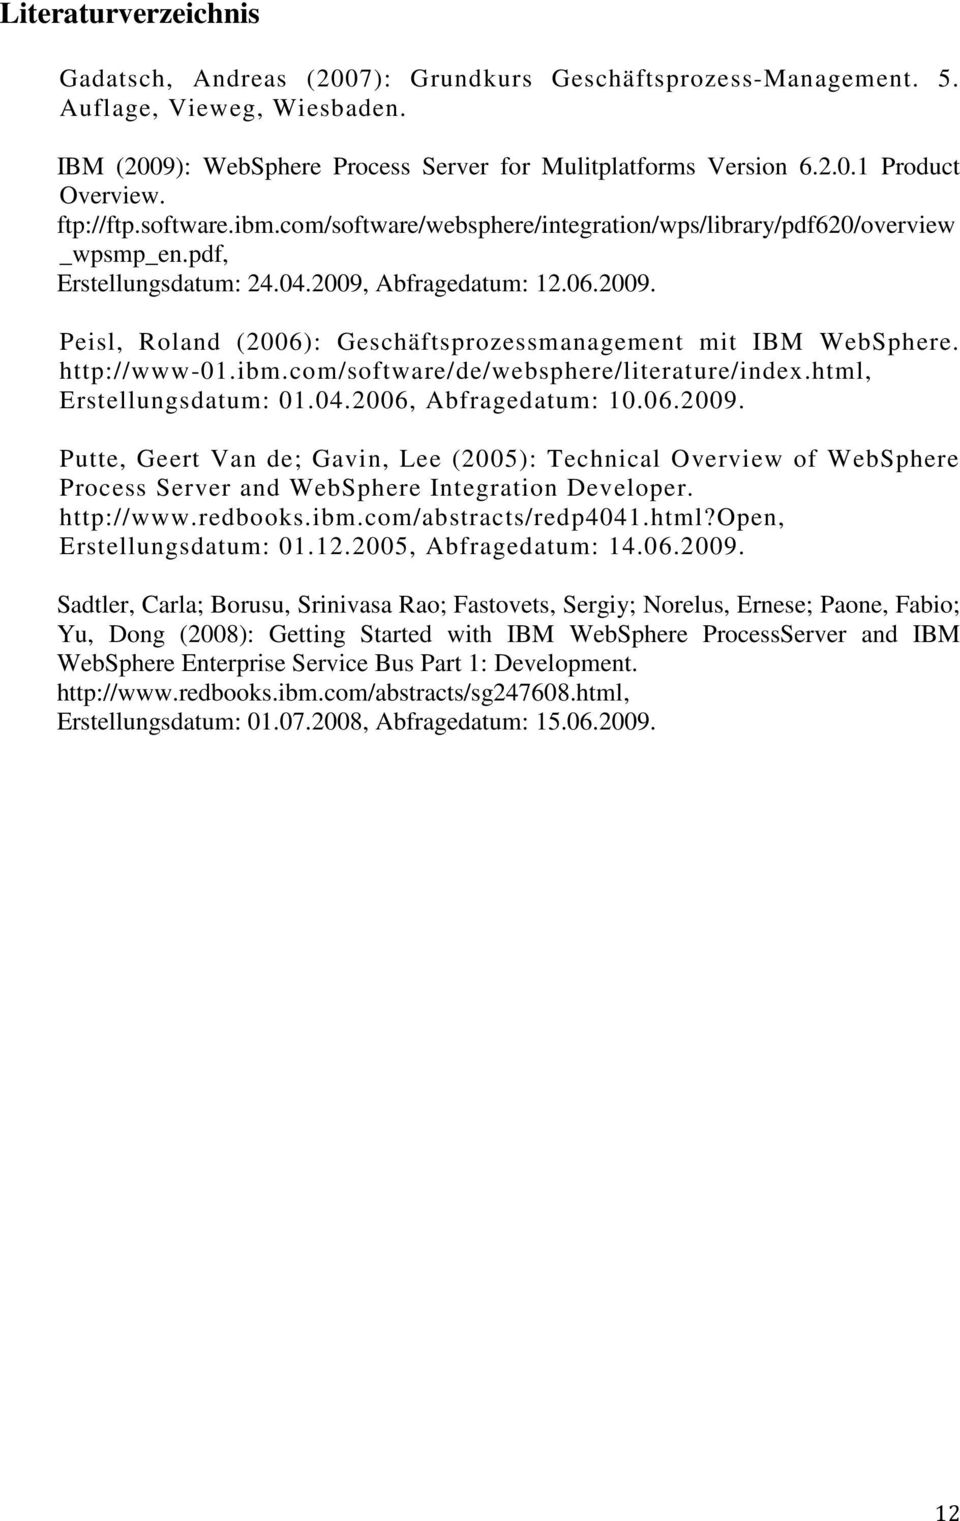 http://www-01.ibm.com/software/de/websphere/literature/index.html, Erstellungsdatum: 01.04.2006, Abfragedatum: 10.06.2009.